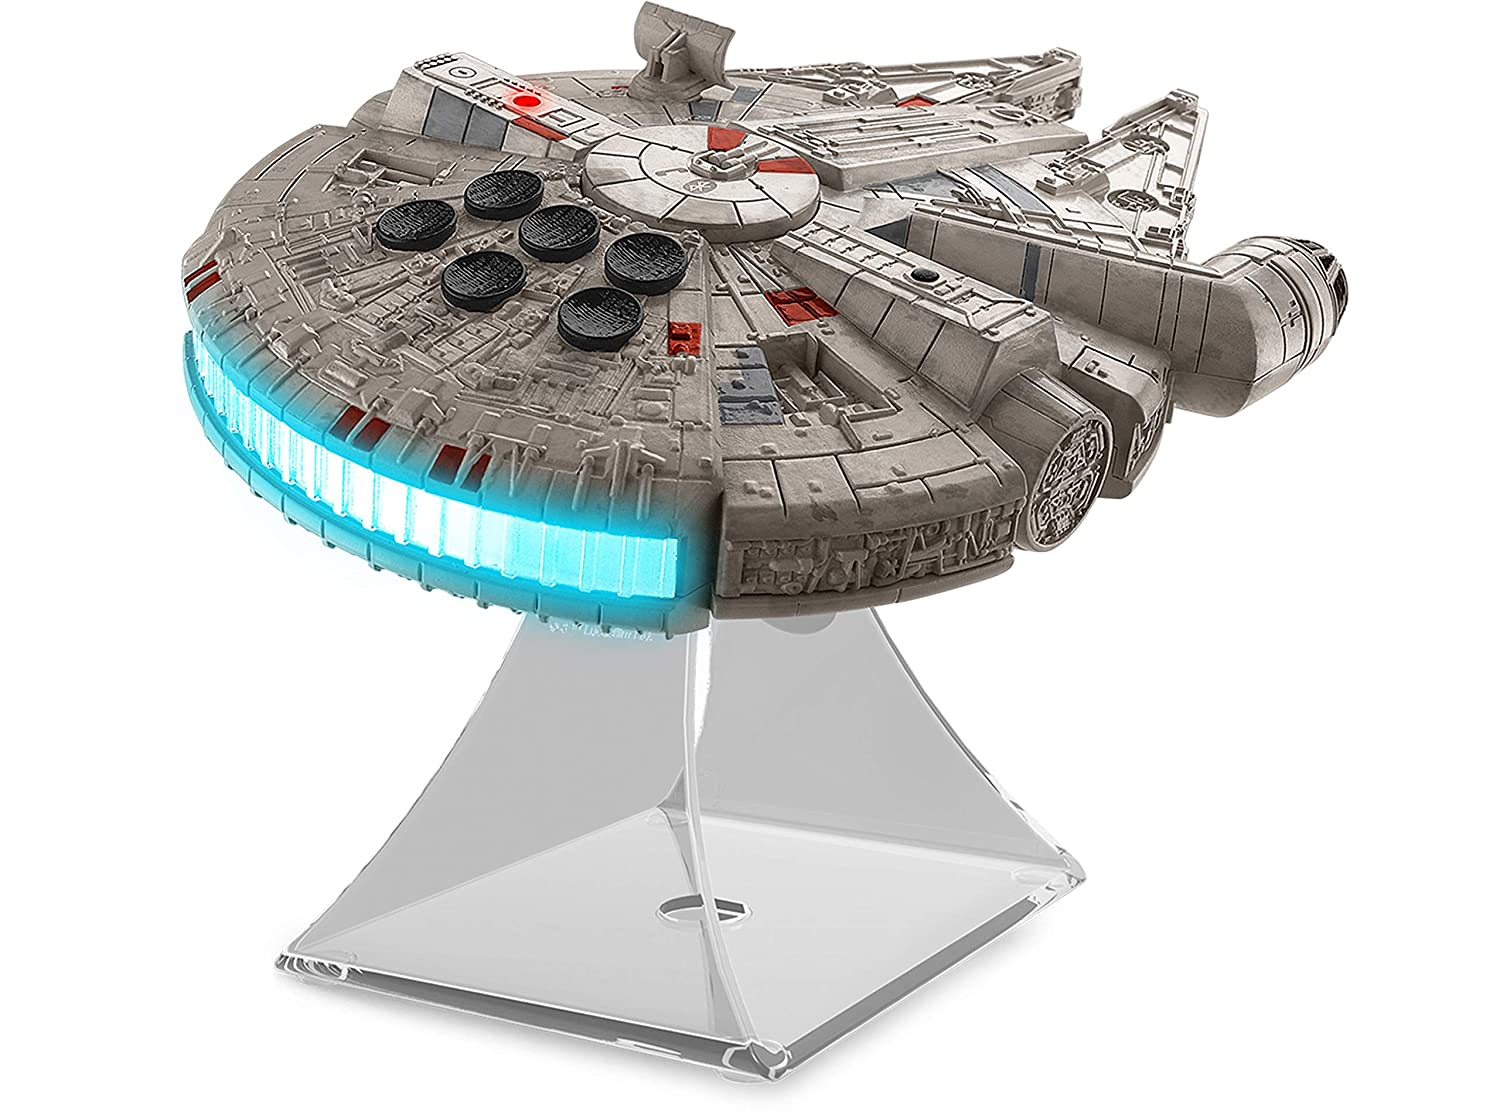 Star Wars Millenium Falcon Bluetooth Speaker Portable Wireless Crystal  Clear for Home, Travel, Outdoor, Rechargeable, Compatible with iPhone  Samsung